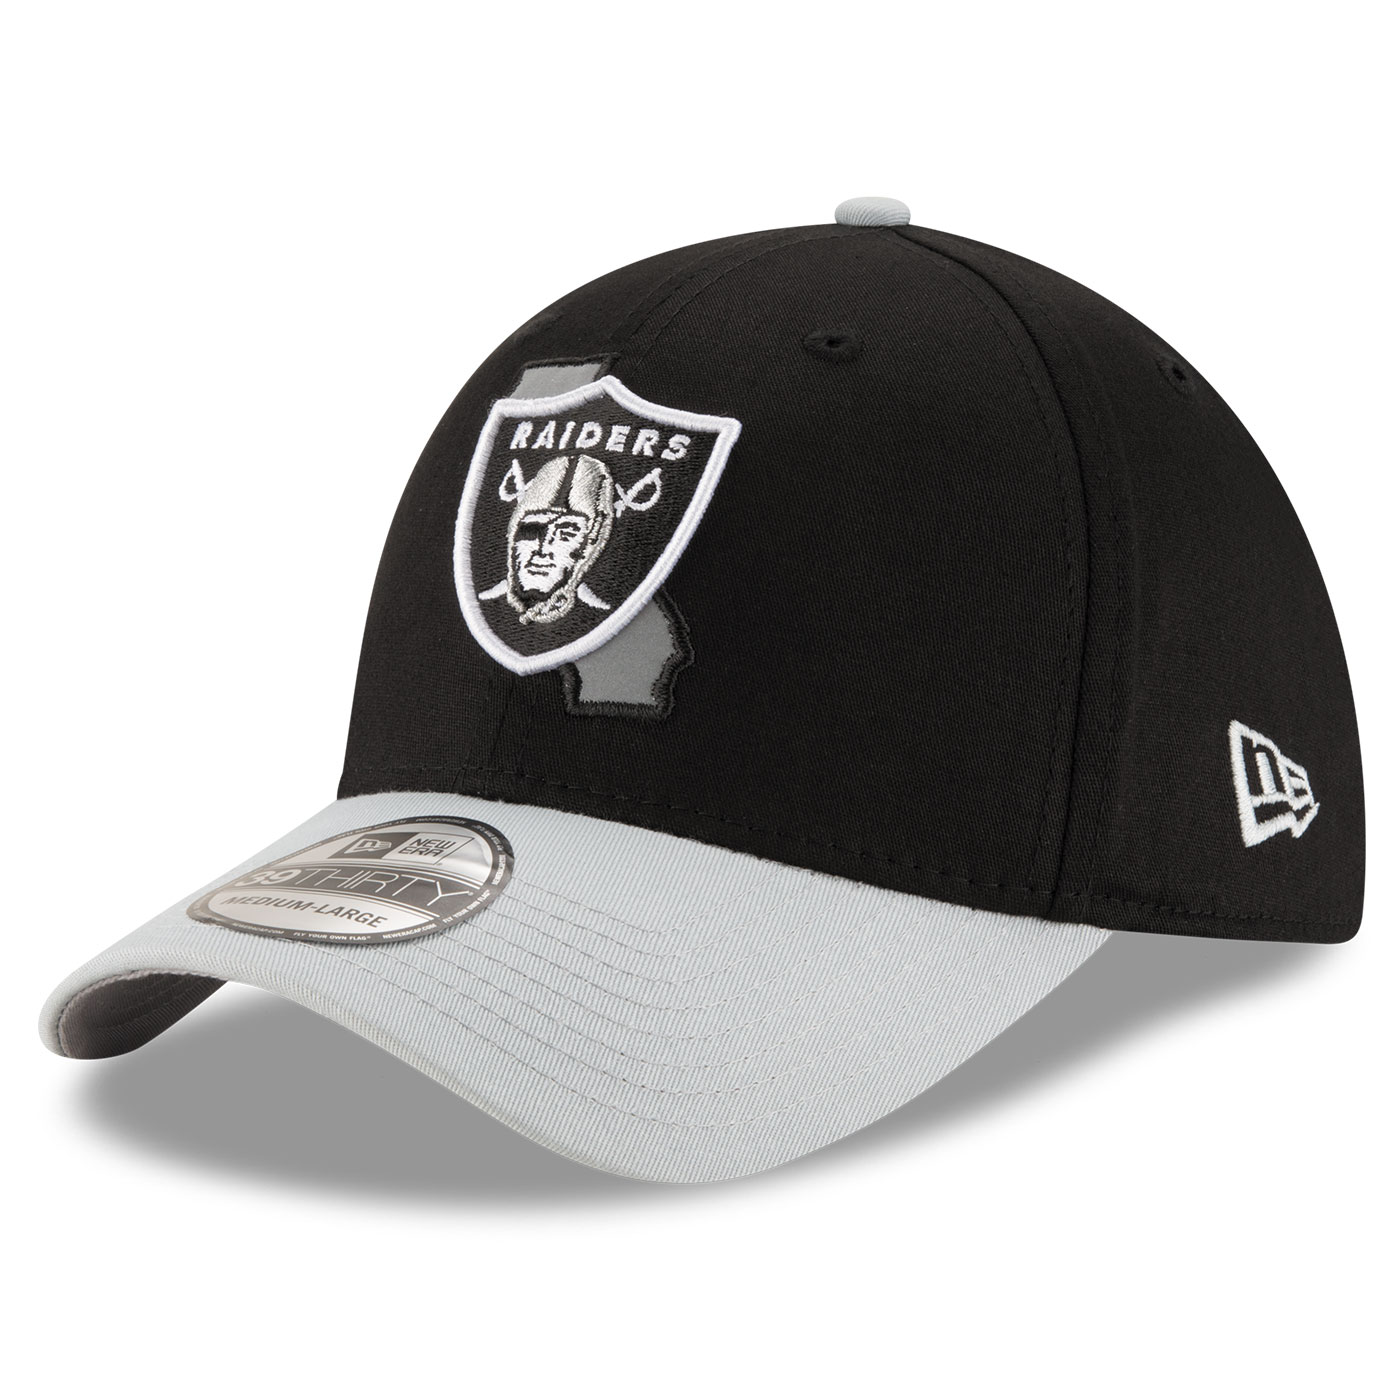 d992b4fdeae ... closeout raiders new era 39thirty state reflective cap 85471 6f38d